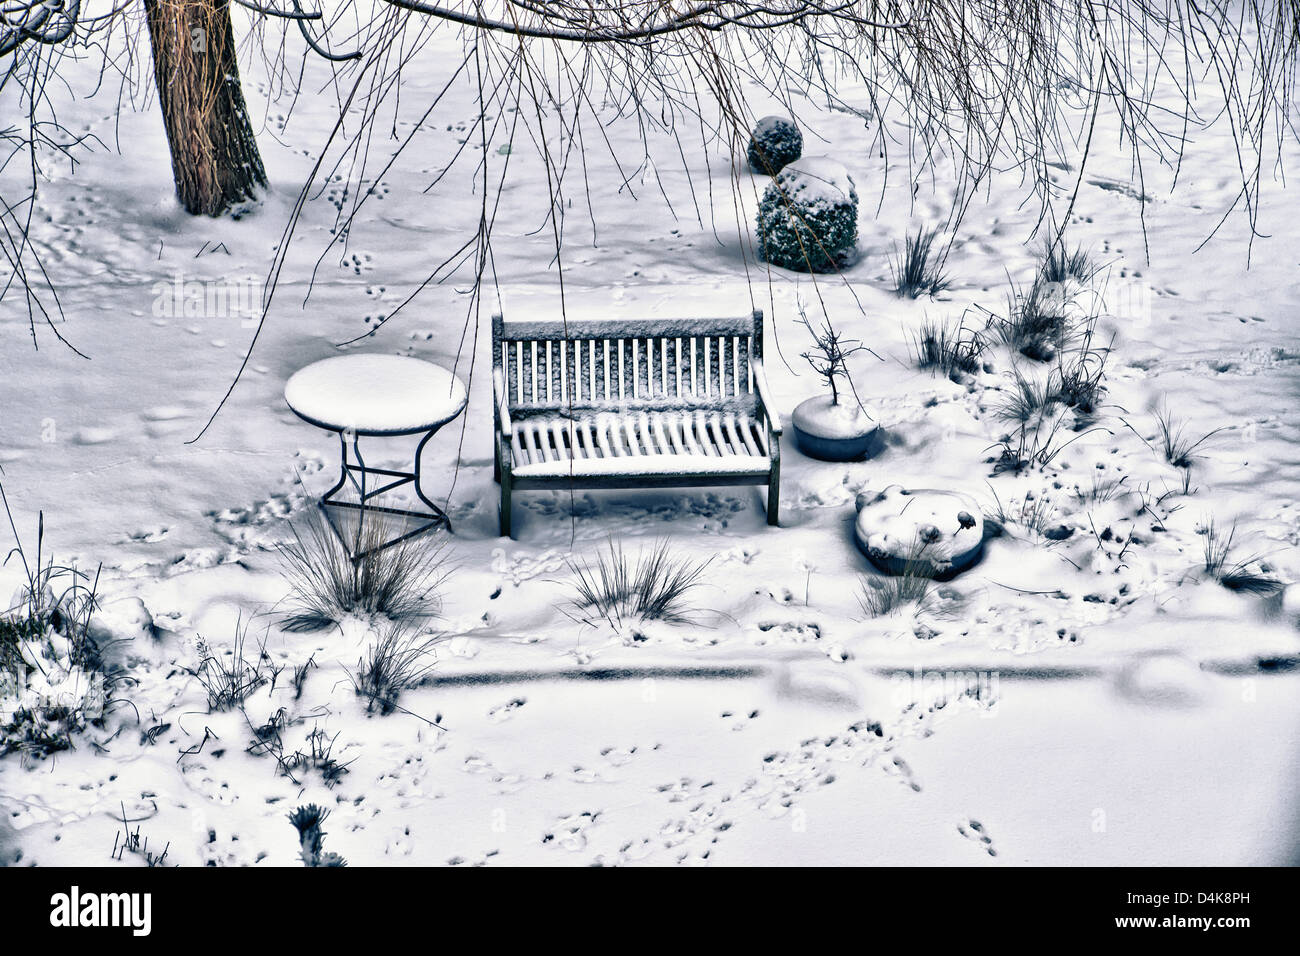 Bench and table on snowy street - Stock Image